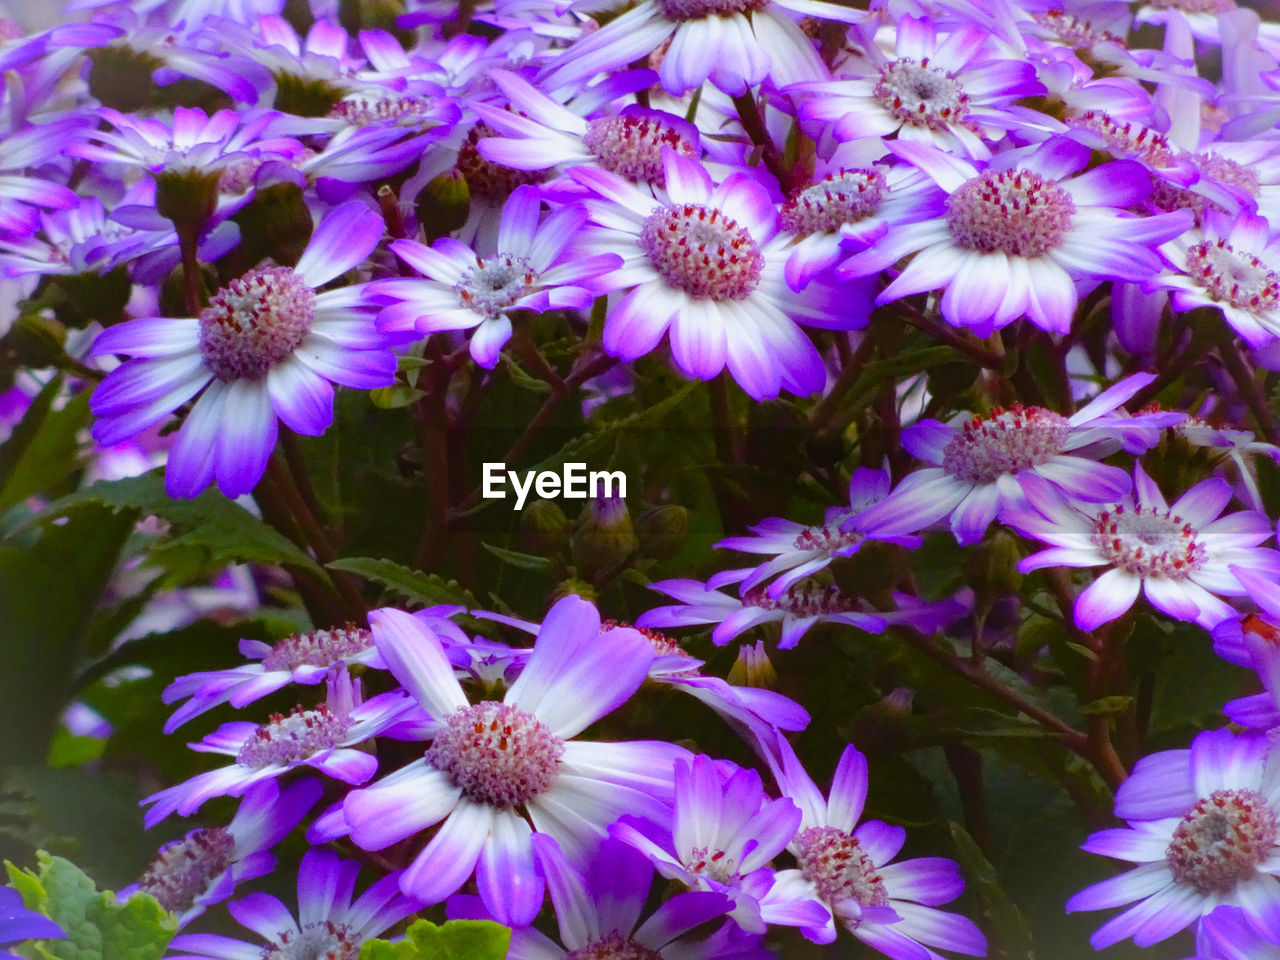 flower, flowering plant, vulnerability, fragility, freshness, beauty in nature, petal, plant, close-up, growth, purple, flower head, inflorescence, nature, no people, pollen, day, outdoors, full frame, high angle view